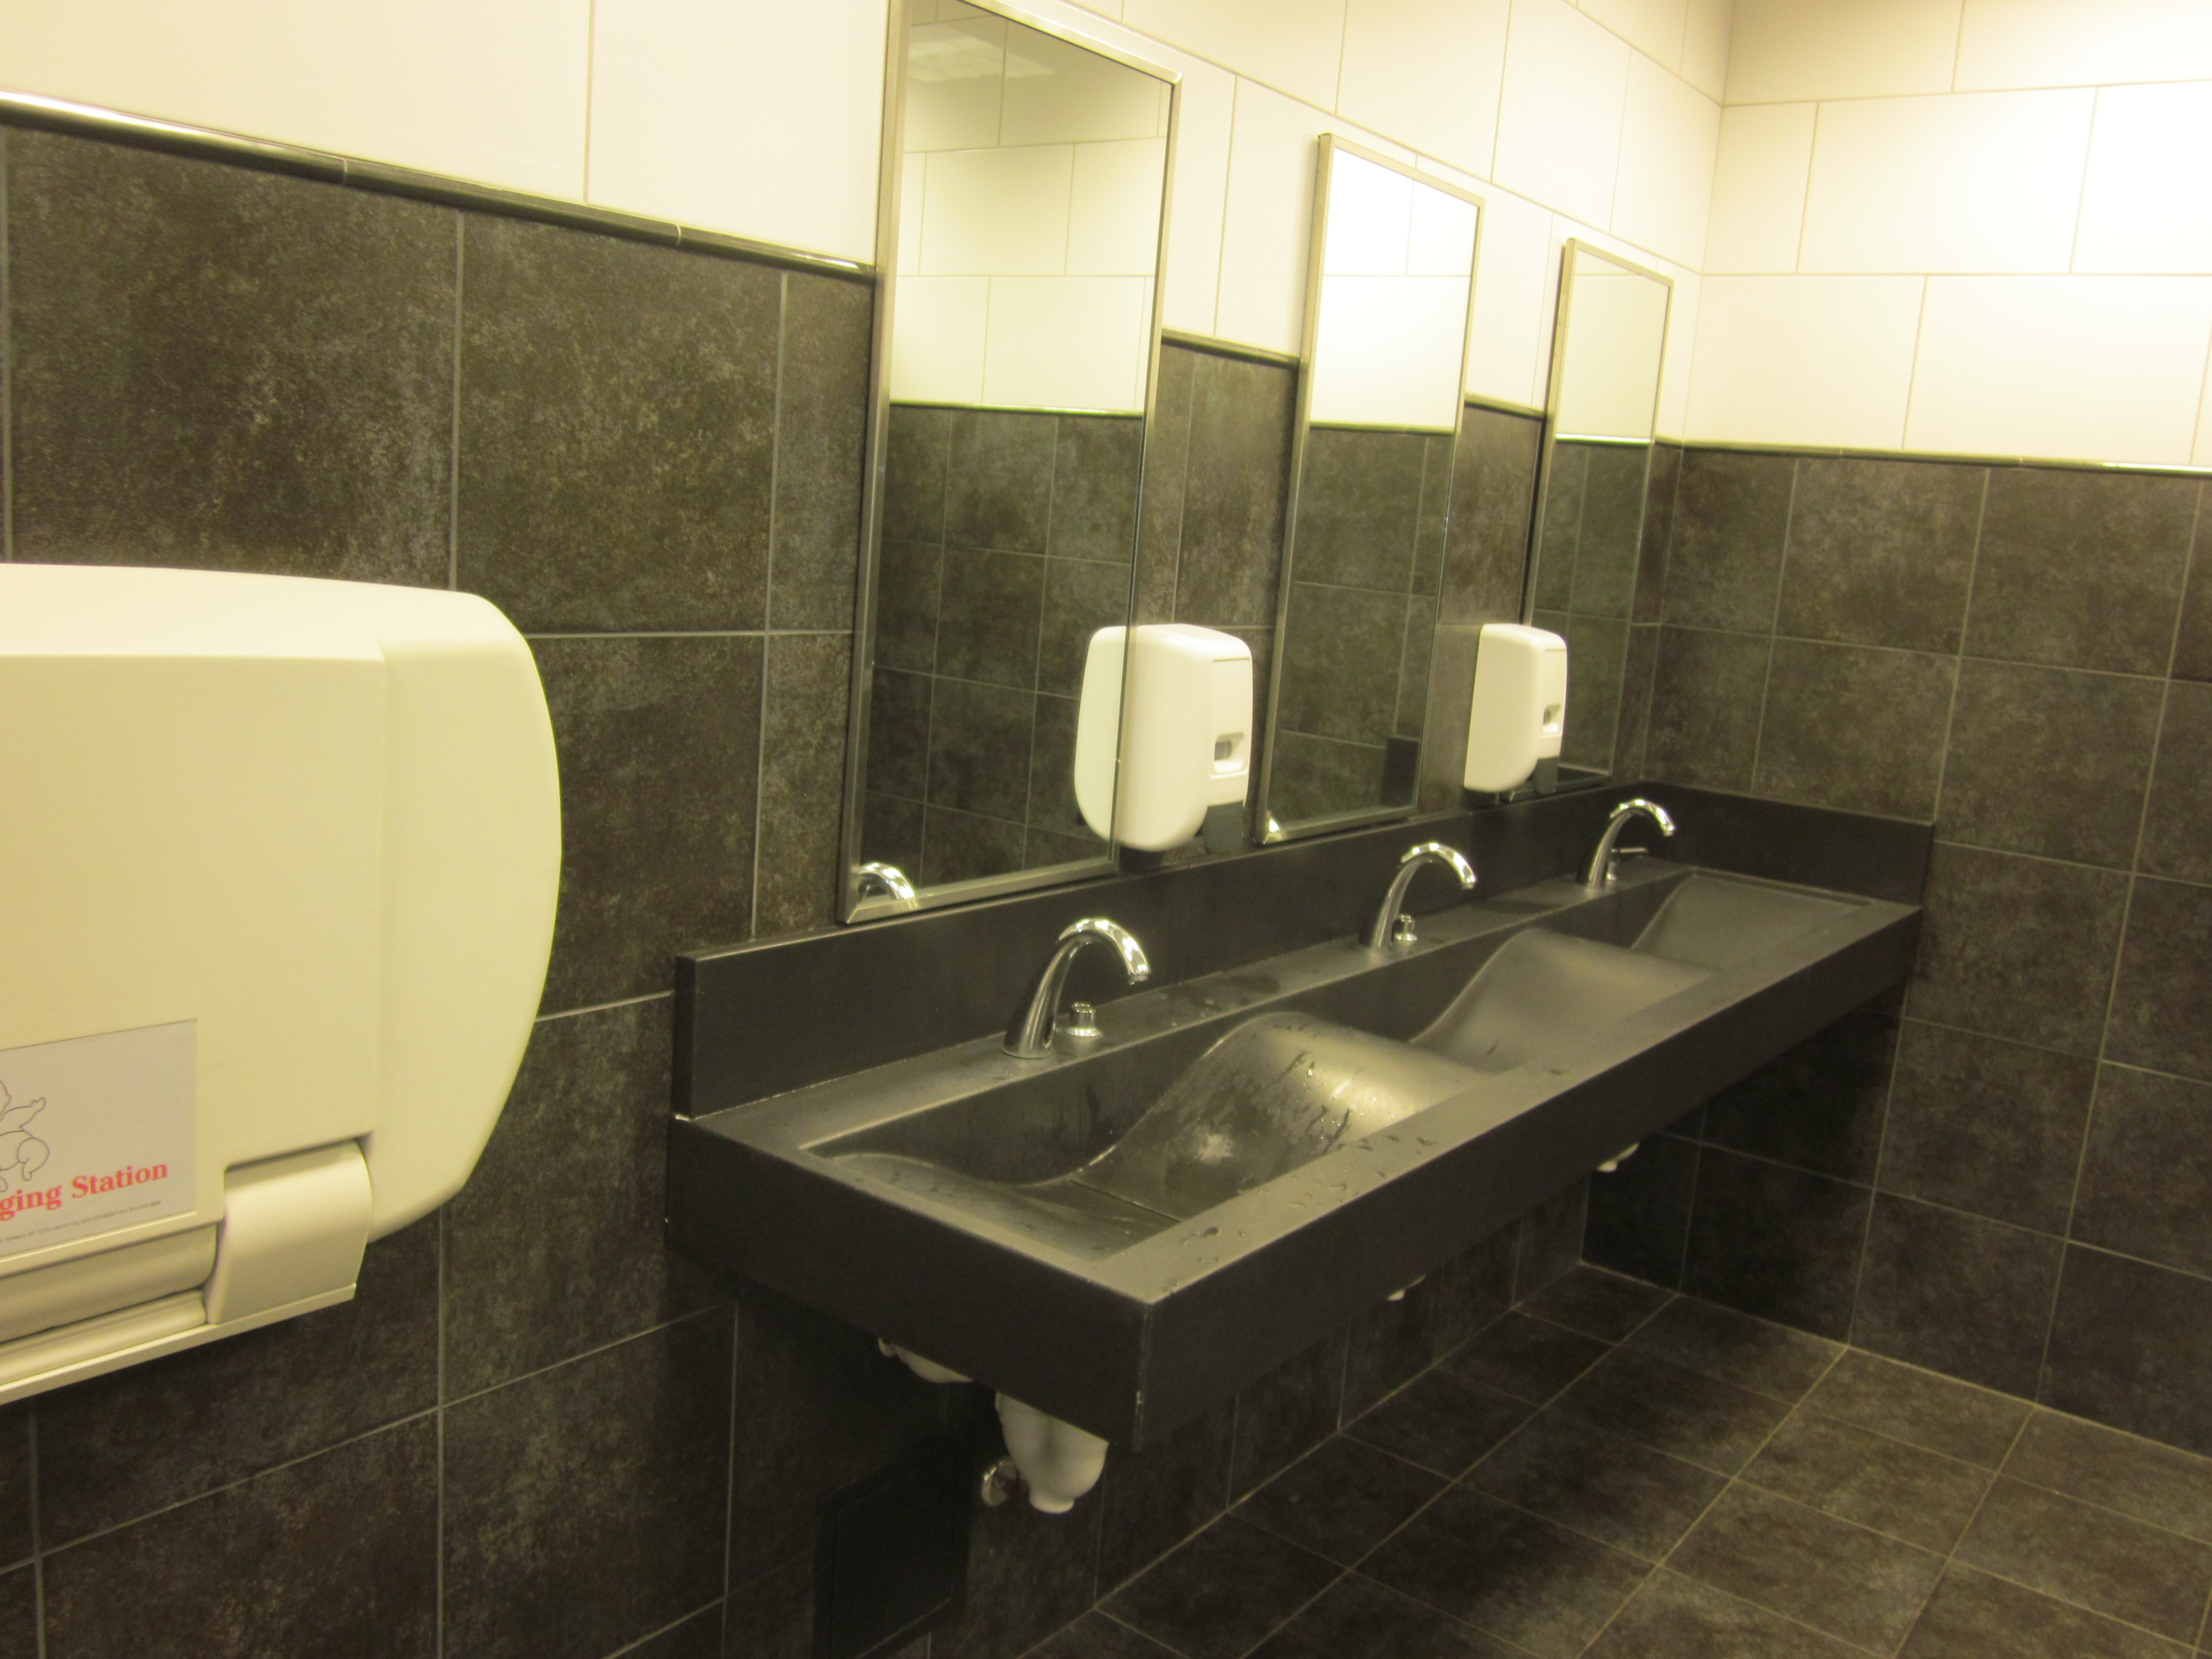 file bathroom sink design at rouses cbd nola jpg wikimedia commons